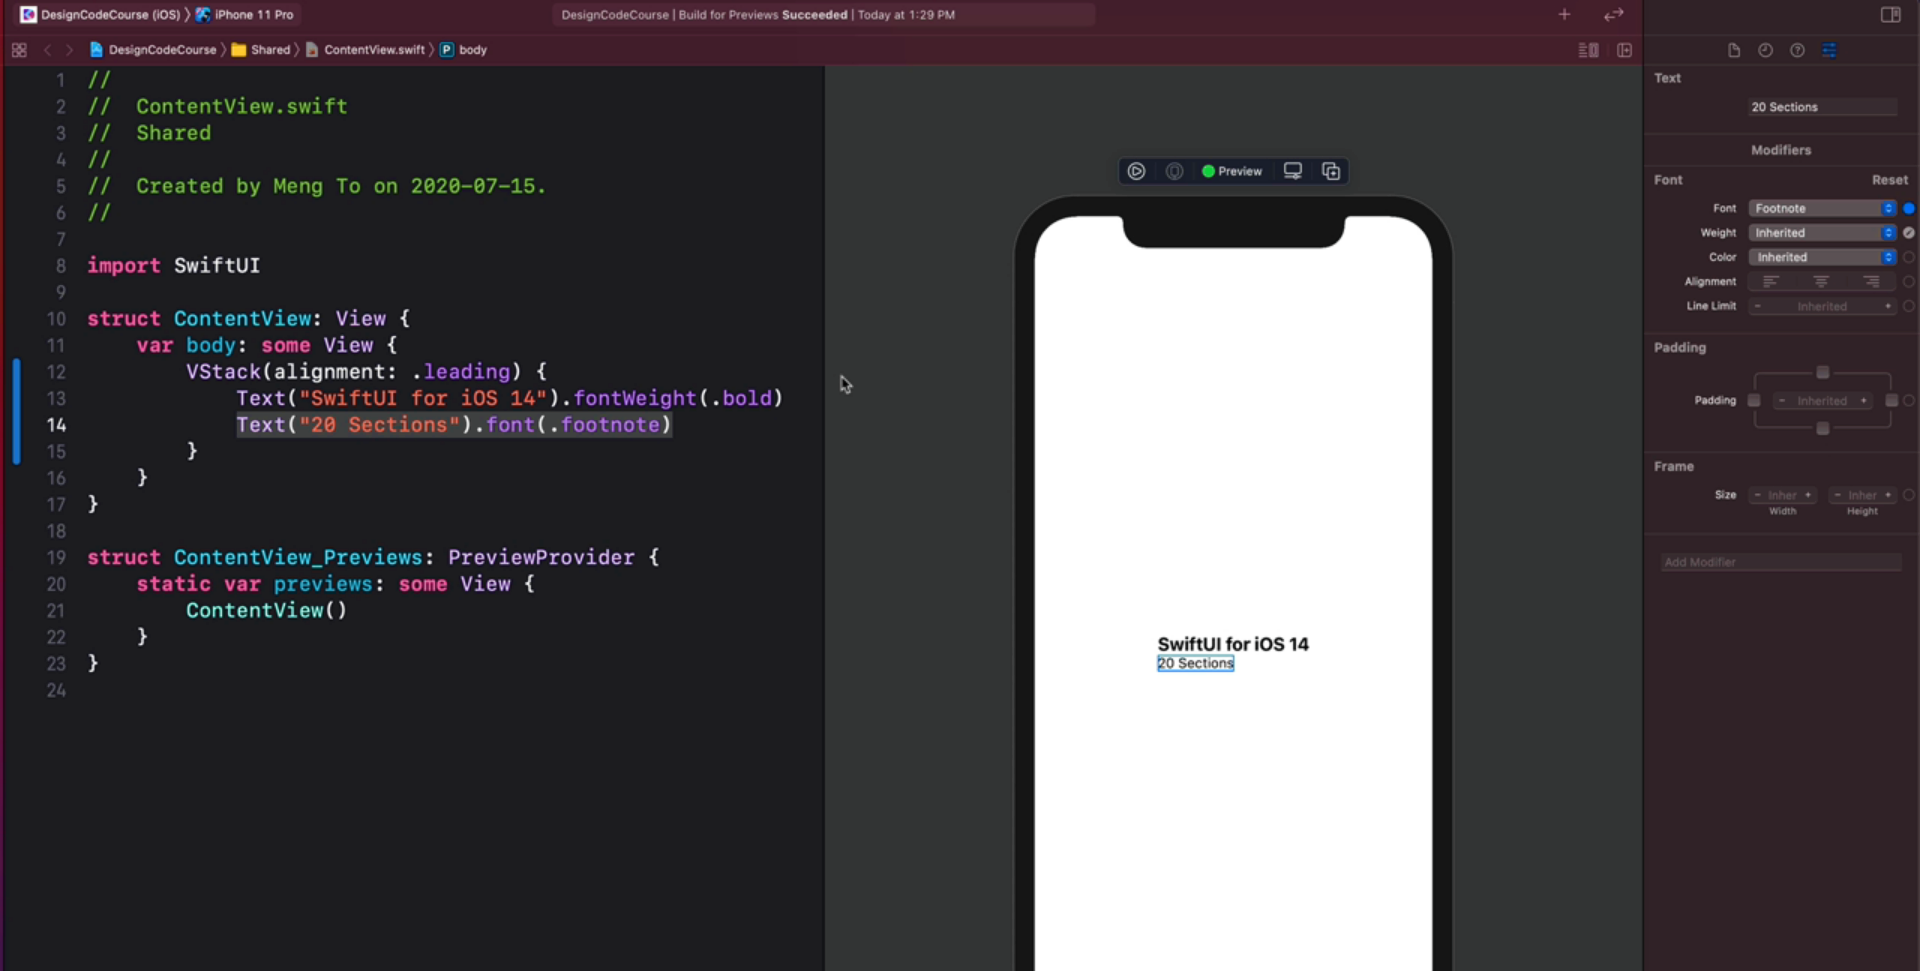 swiftui-section2-4